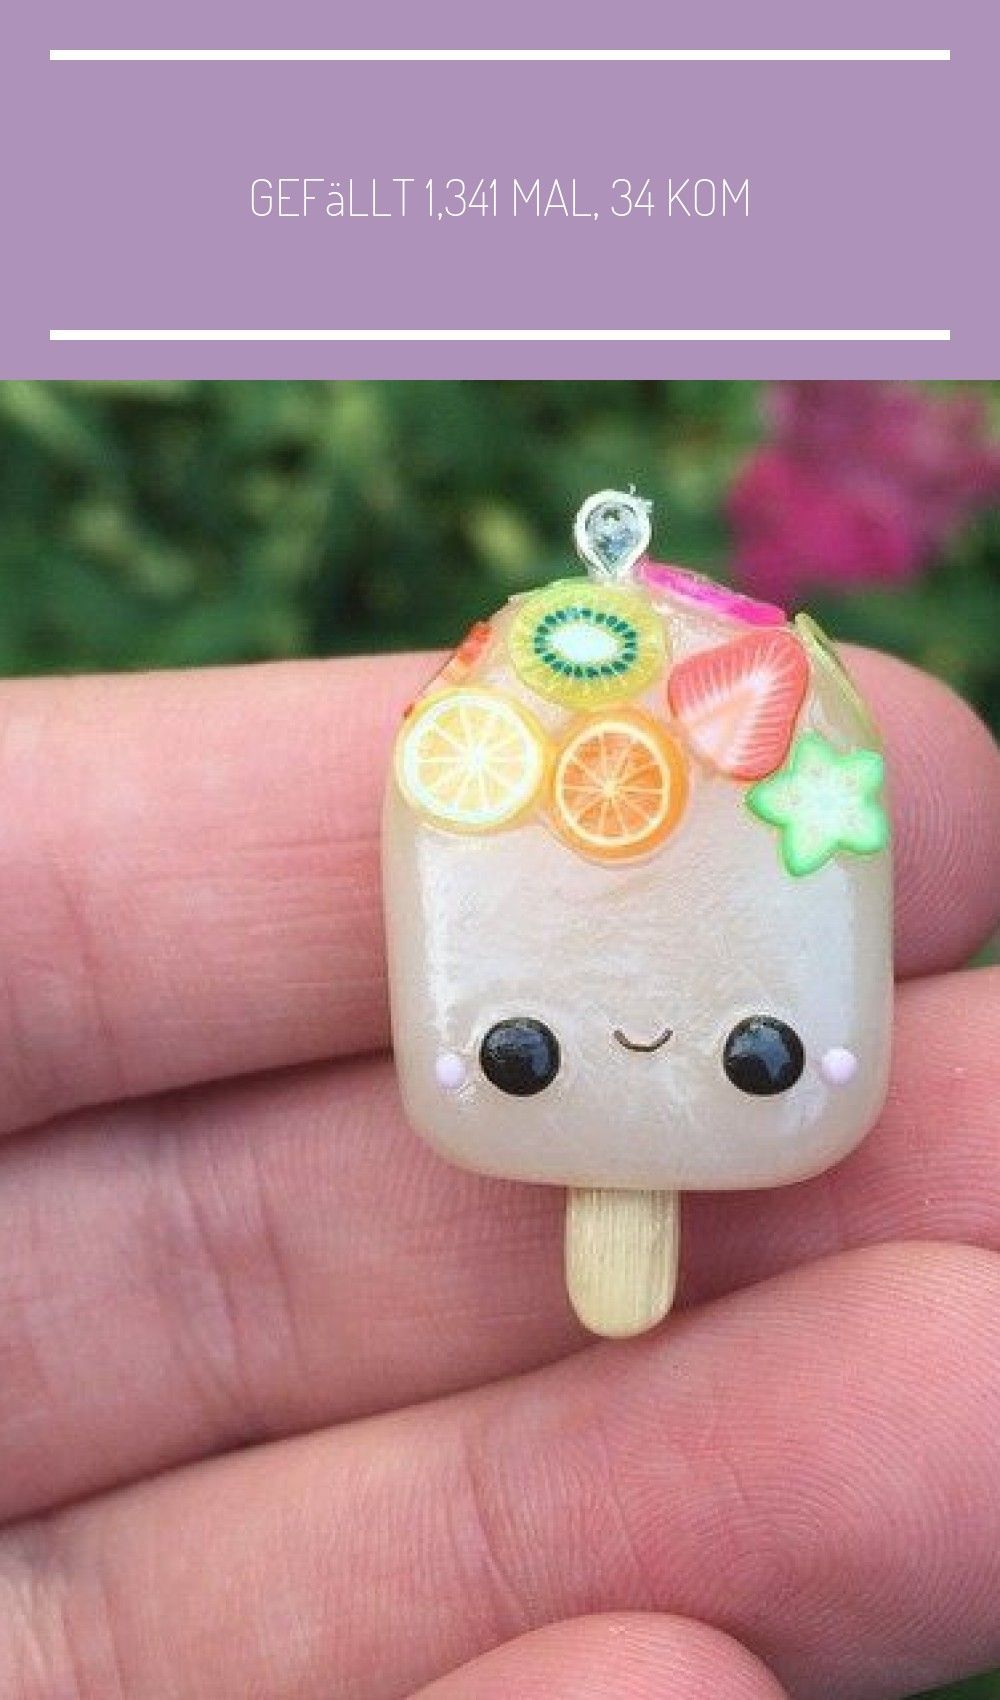 Excellent Cost-Free Polymer Clay Crafts kawaii Thoughts  Gefällt 1,341 Mal, 34 Kommentare – Funk